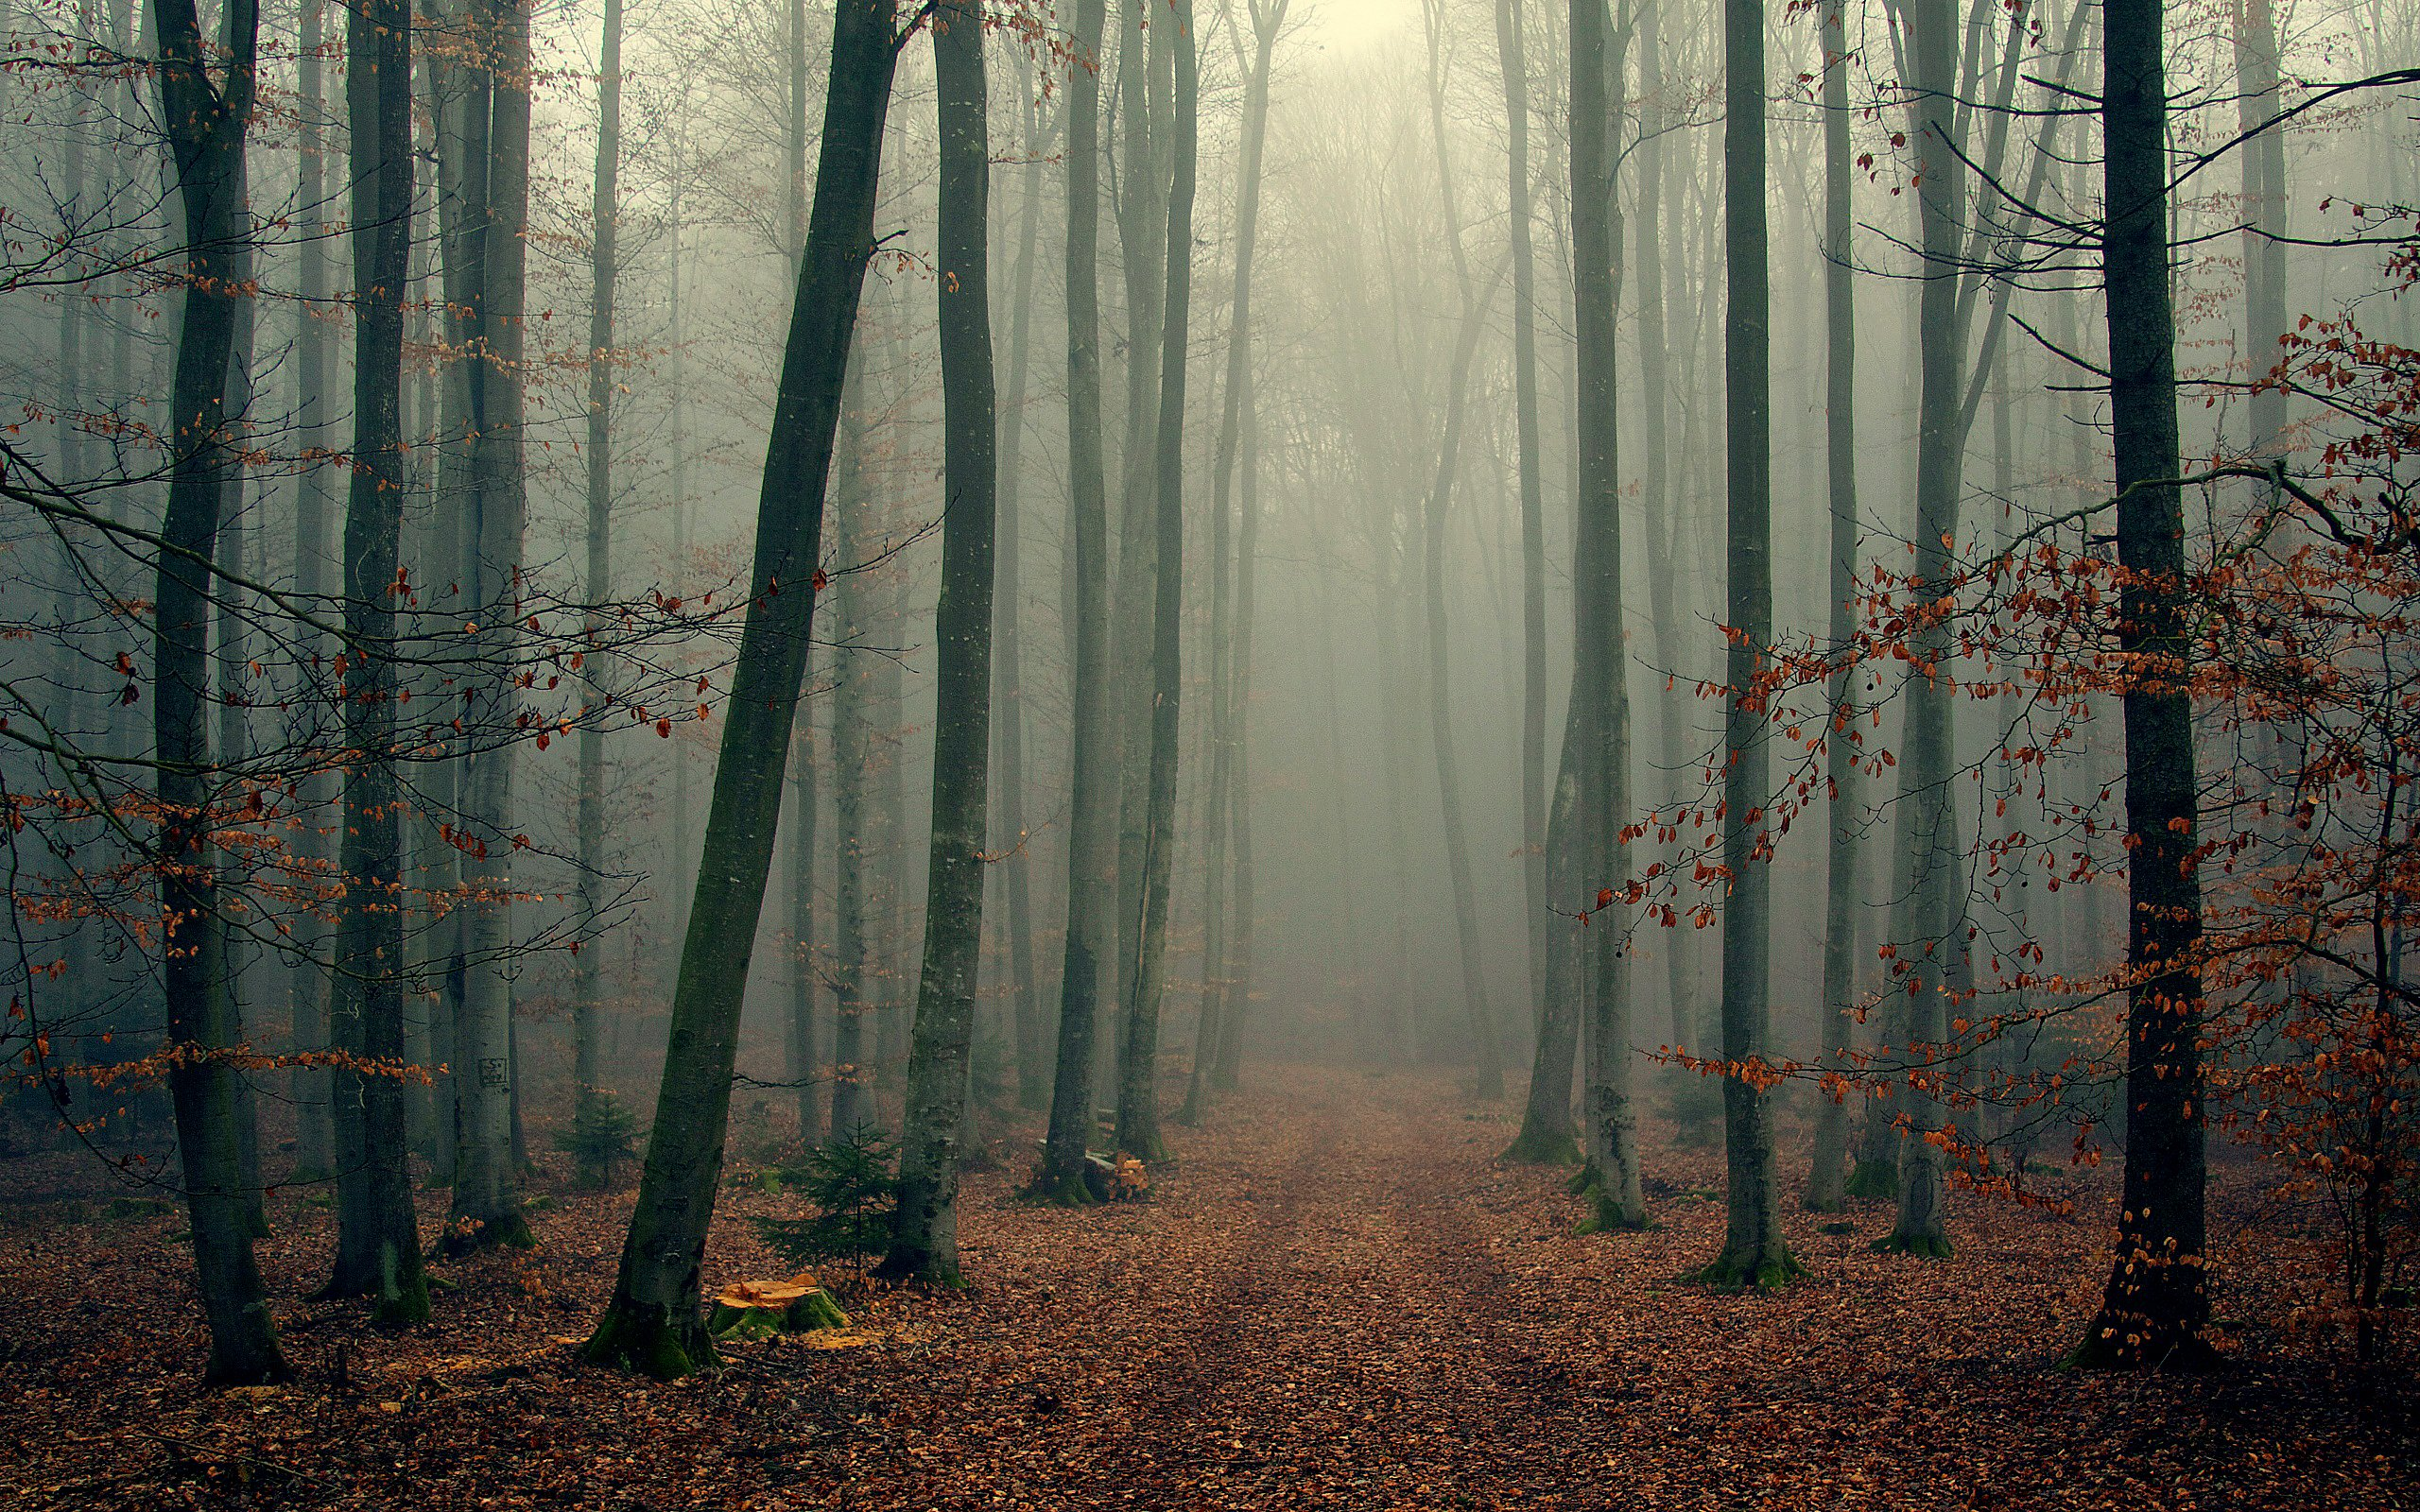 landscape nature tree forest woods autumn fog wallpaper 2560x1600